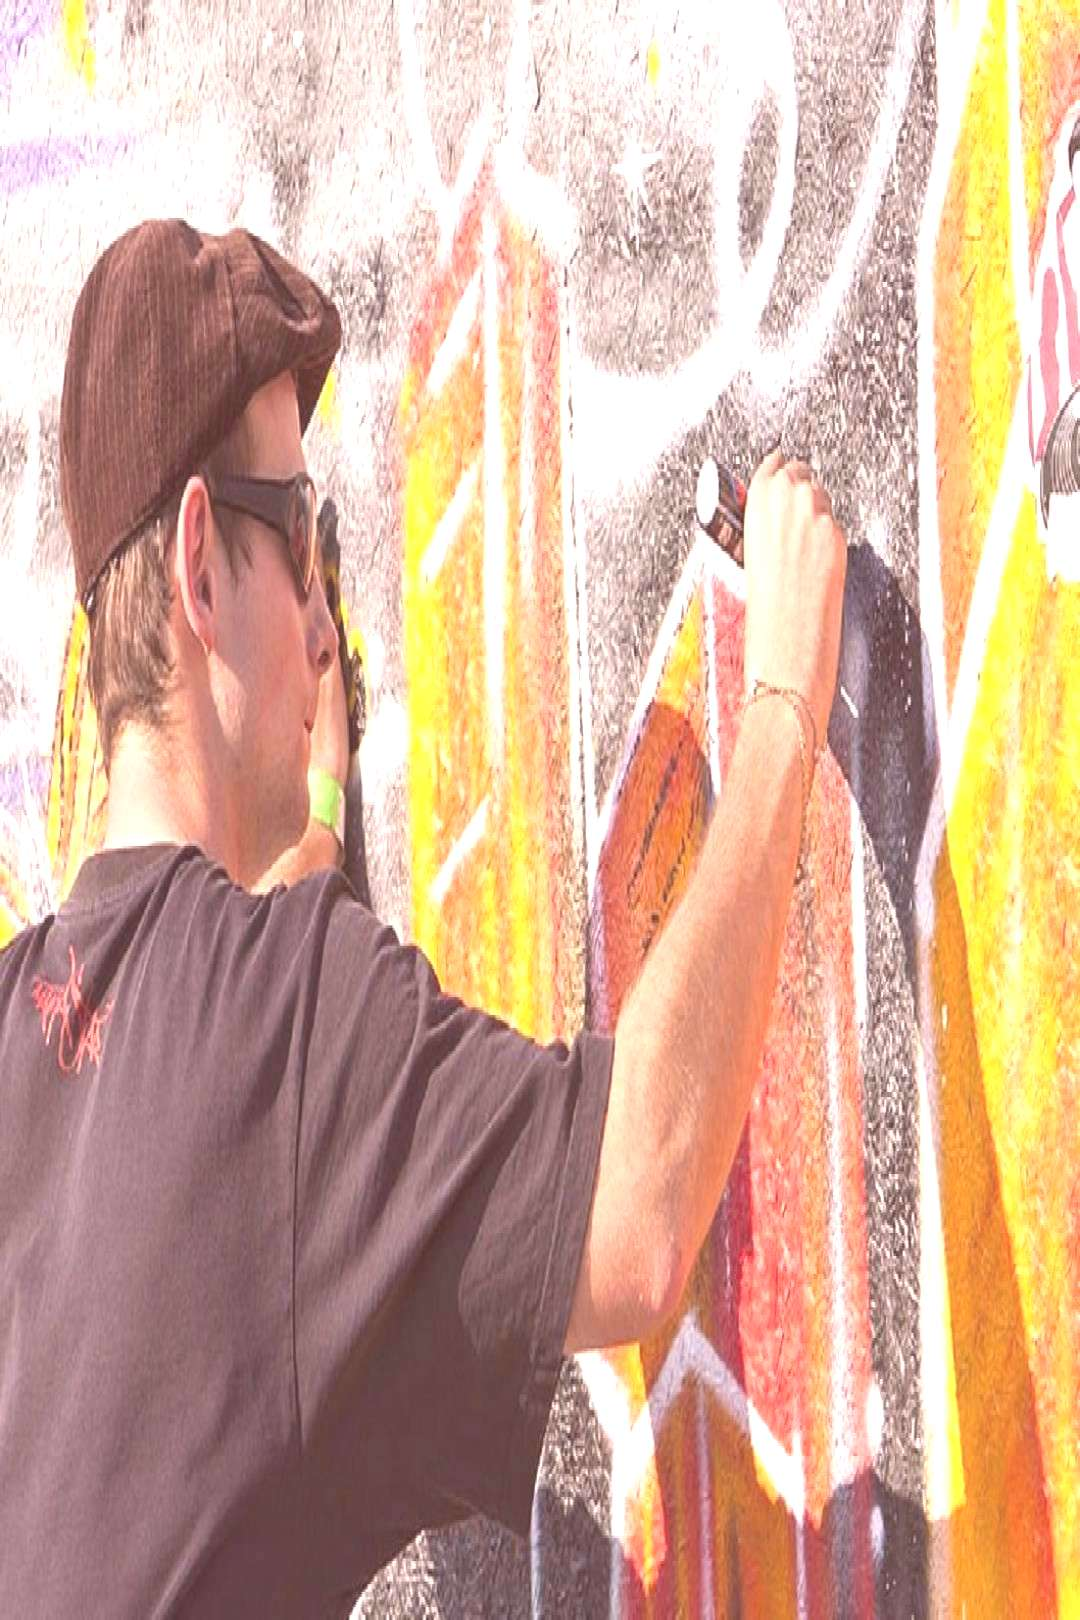 The Best Graffiti Markers folkdYou can find Markers and more on our website.The Best Graffiti Marke